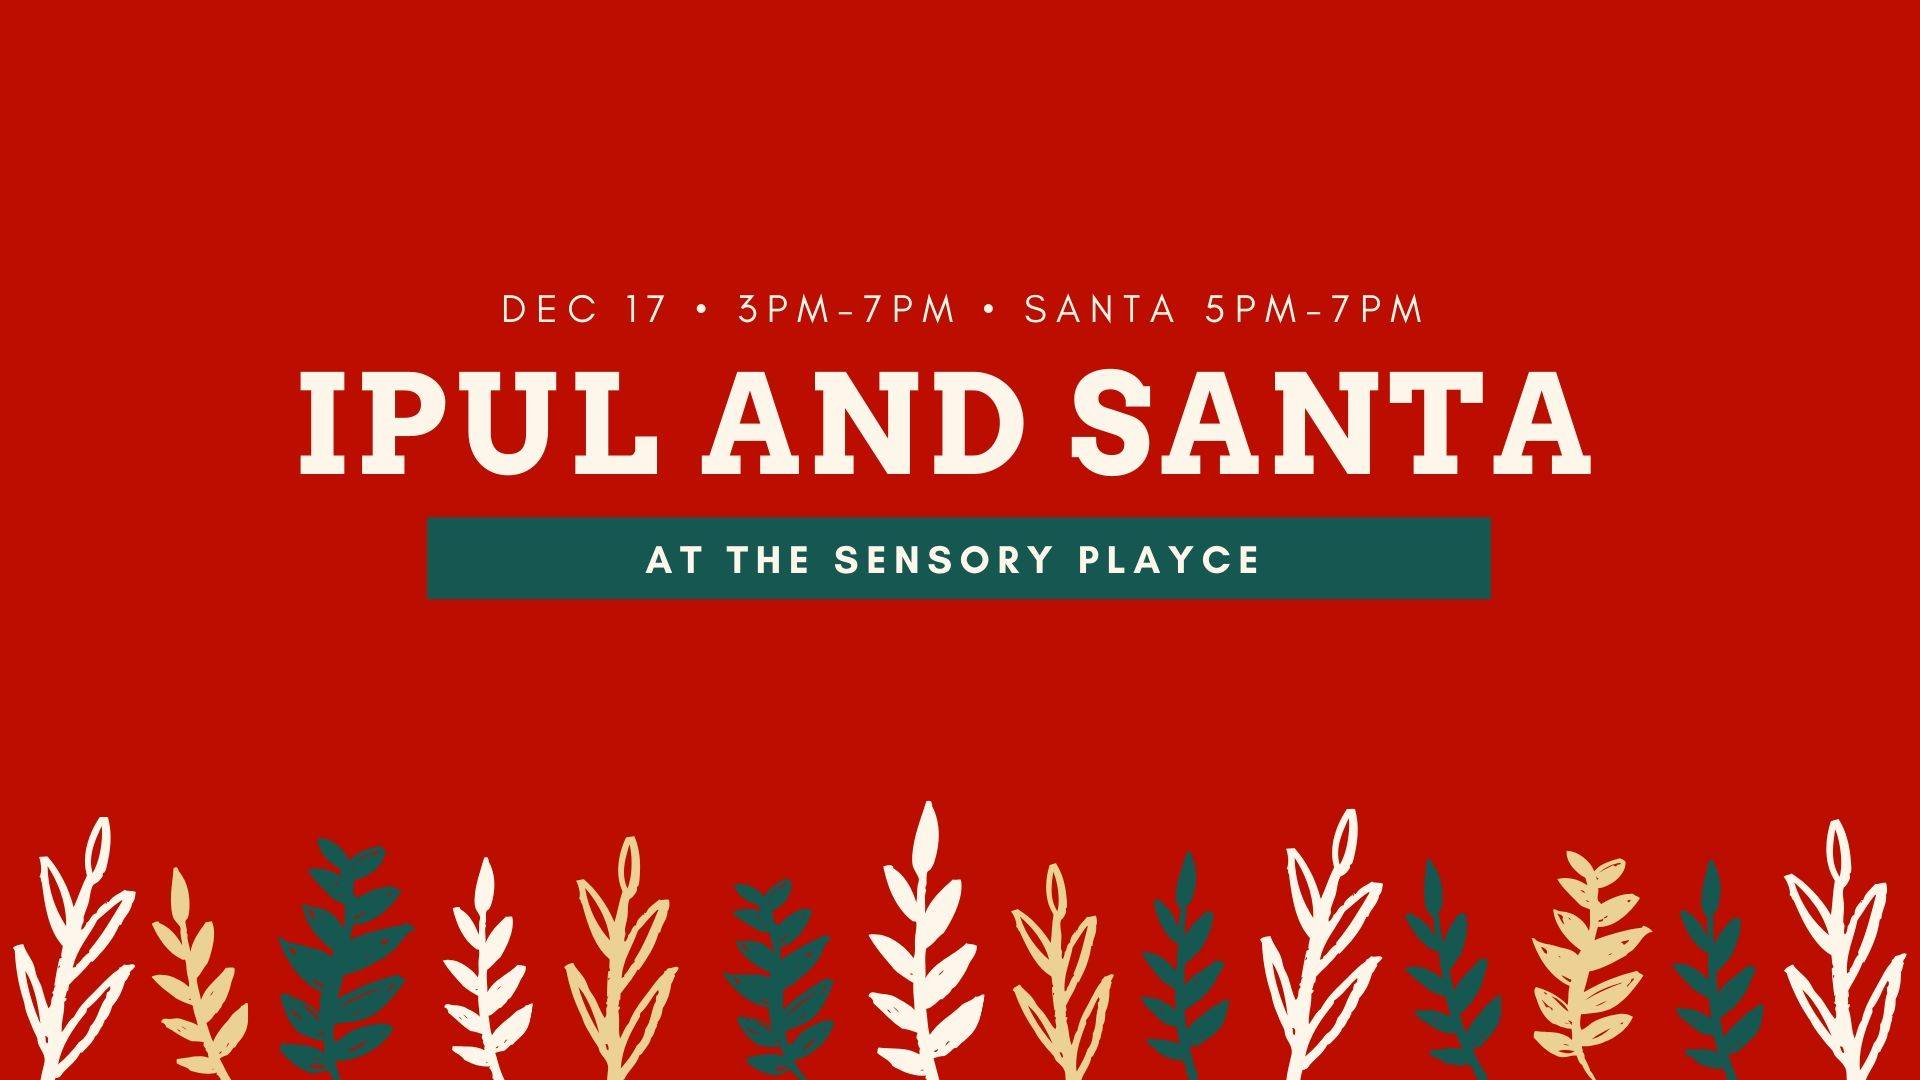 IPUL and the Sensory Playce